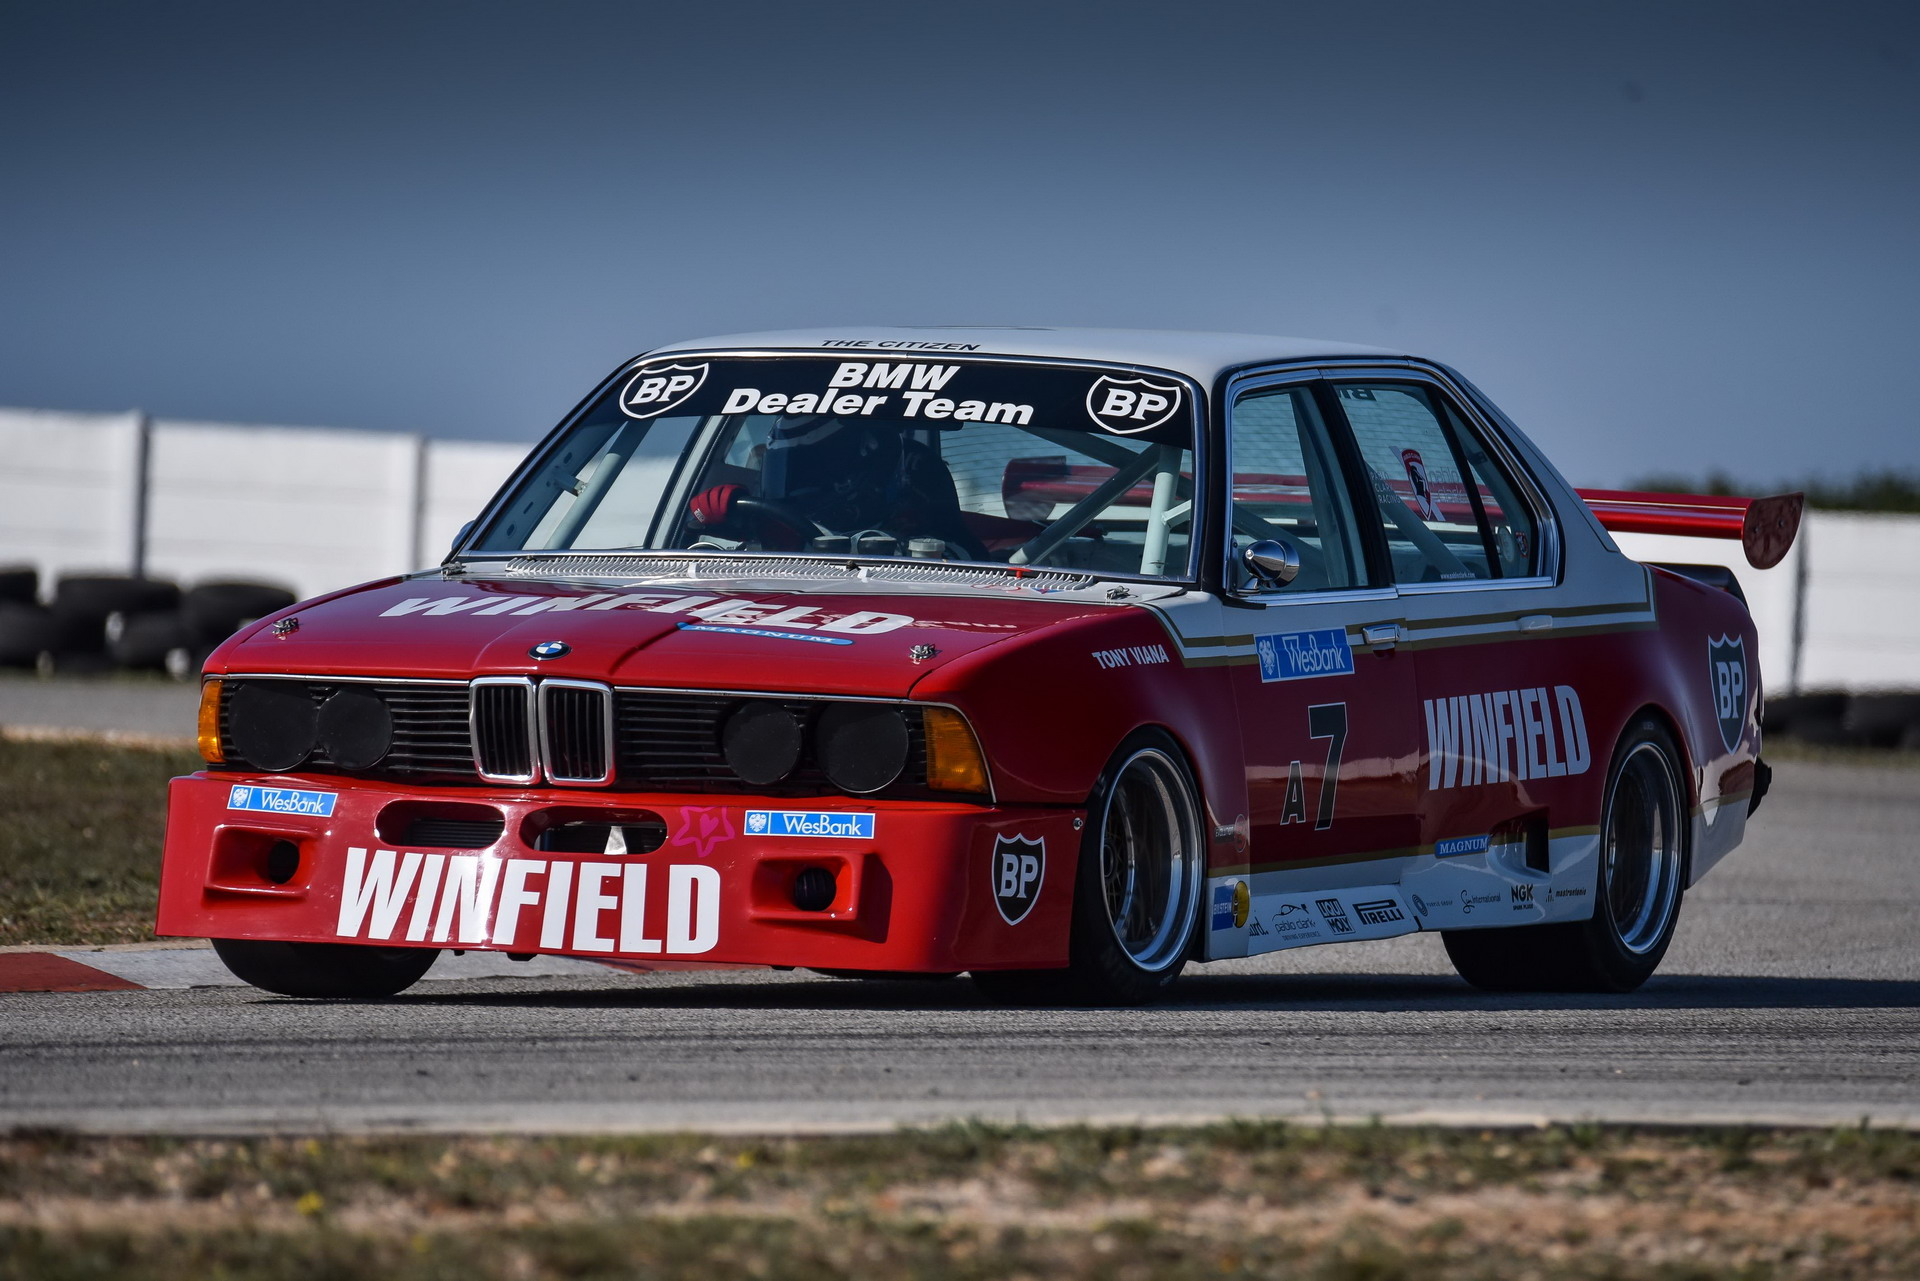 The E23 BMW 745i Winfield race car 32